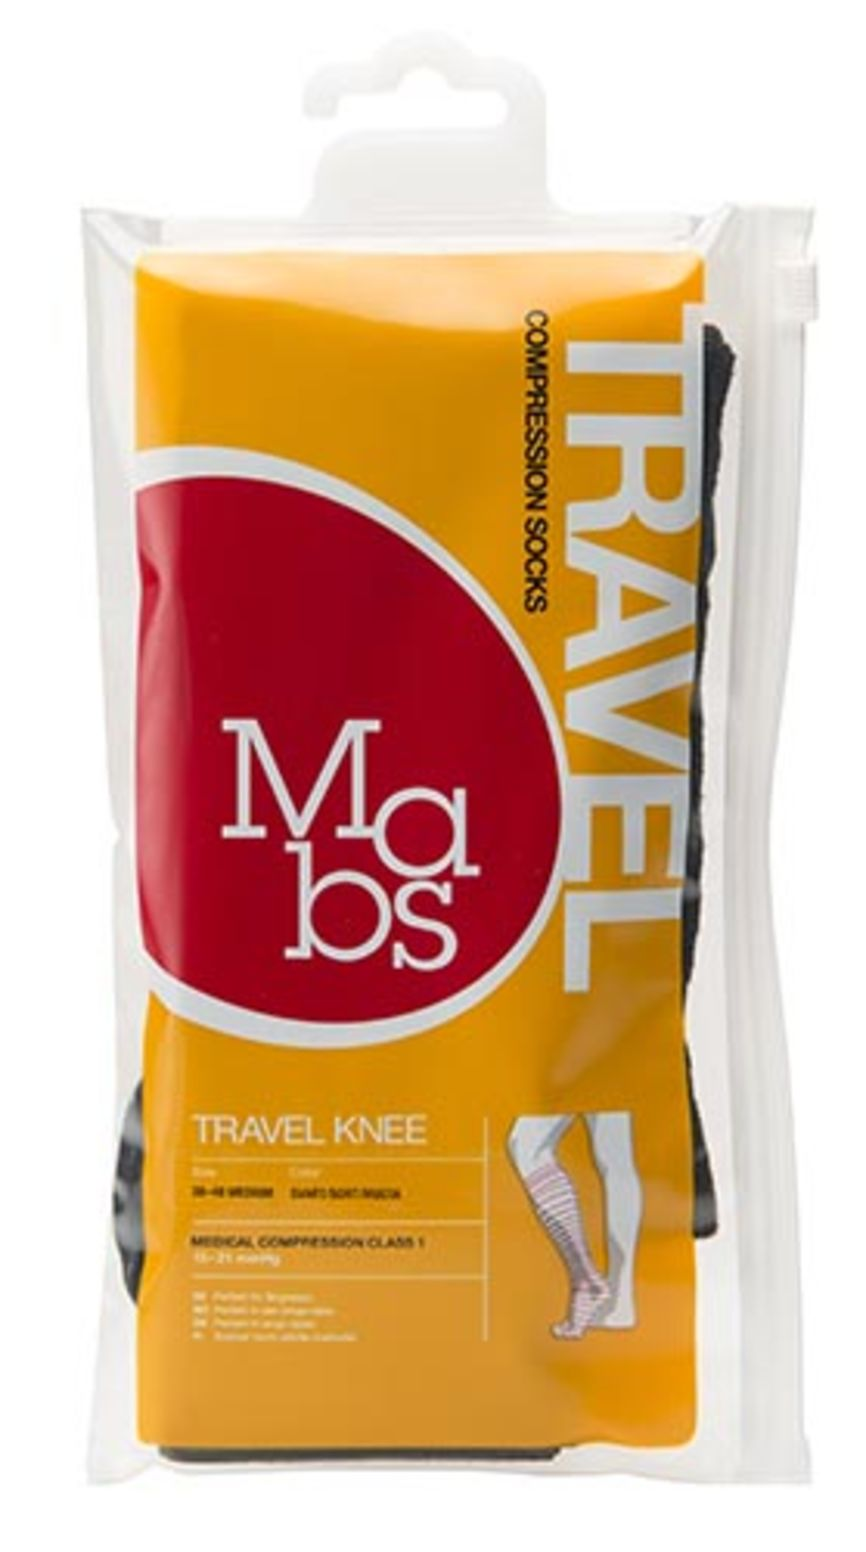 Mabs-forpakning-Travel-Mjpg-pearl866x